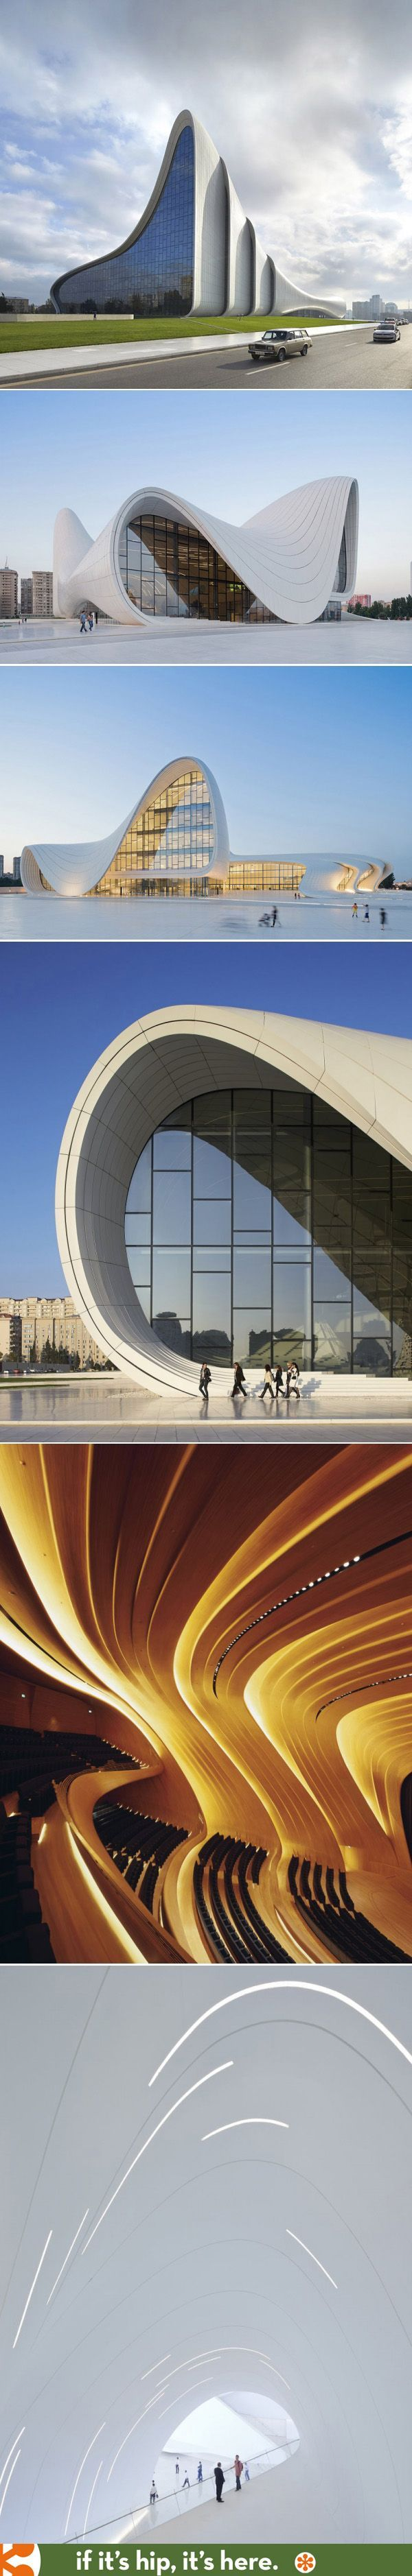 Zaha hadid 39 s heydar aliyev centre wins 2014 design of the for Amazing architecture